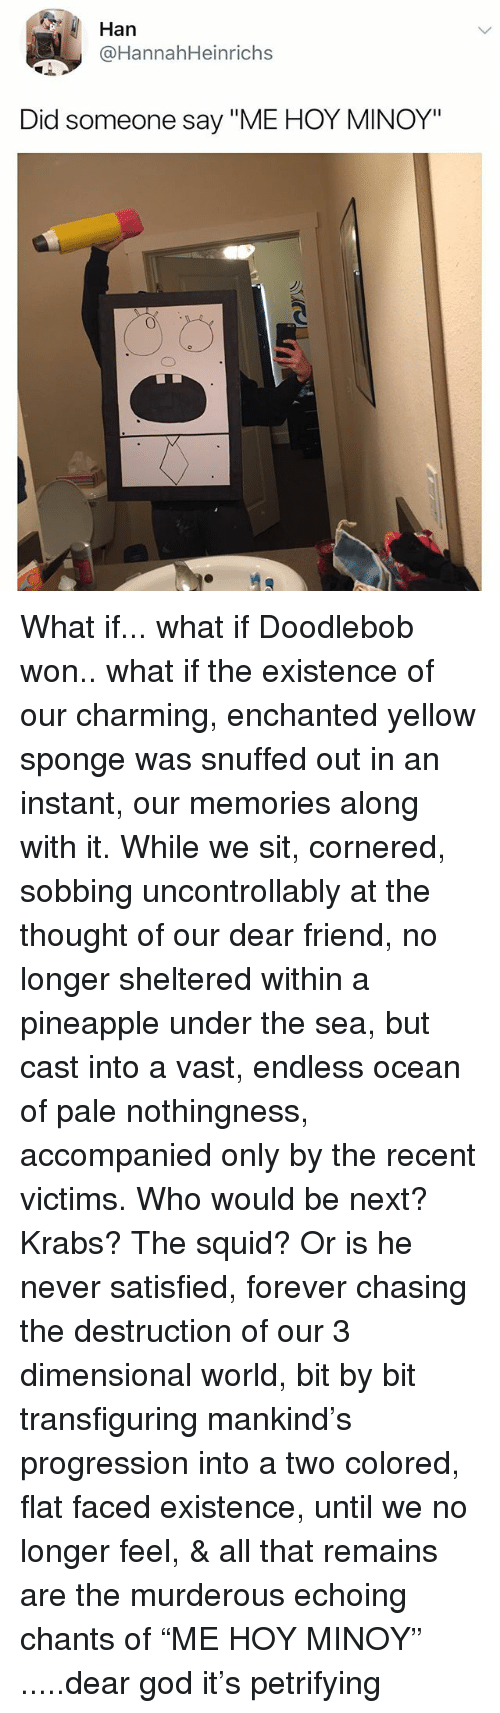 """DoodleBob, God, and Forever: Han  @HannahHeinrichs  Did someone say """"ME HOY MINOY"""" What if... what if Doodlebob won.. what if the existence of our charming, enchanted yellow sponge was snuffed out in an instant, our memories along with it. While we sit, cornered, sobbing uncontrollably at the thought of our dear friend, no longer sheltered within a pineapple under the sea, but cast into a vast, endless ocean of pale nothingness, accompanied only by the recent victims. Who would be next? Krabs? The squid? Or is he never satisfied, forever chasing the destruction of our 3 dimensional world, bit by bit transfiguring mankind's progression into a two colored, flat faced existence, until we no longer feel, & all that remains are the murderous echoing chants of """"ME HOY MINOY"""" .....dear god it's petrifying"""